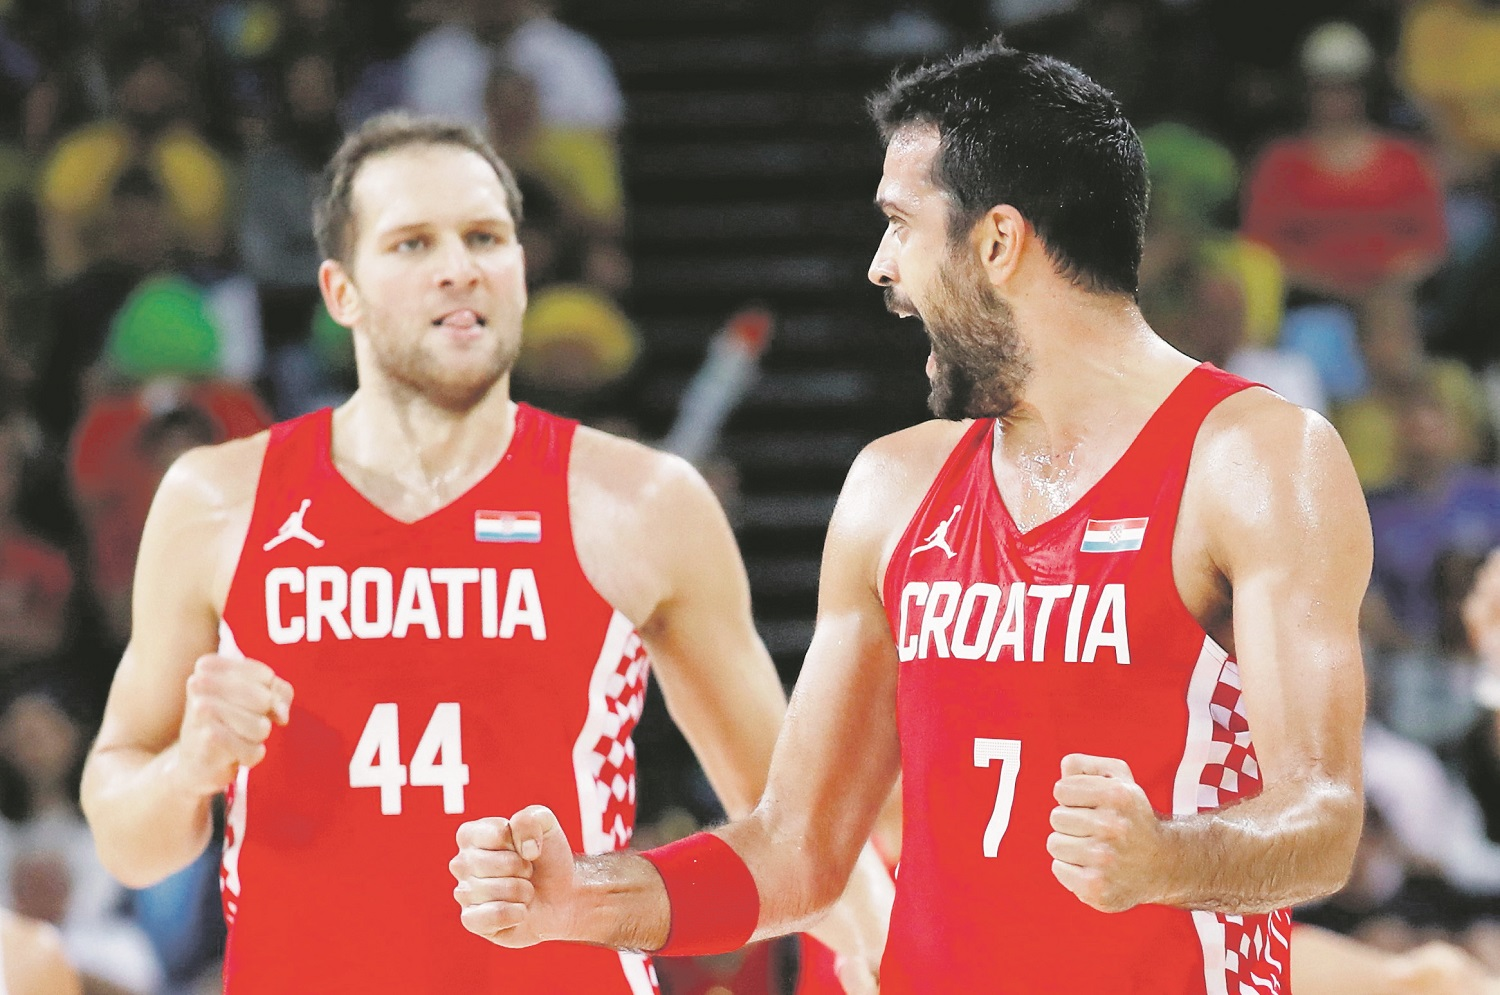 2016 Rio Olympics - Basketball - Preliminary - Men's Preliminary Round Group B Brazil v Croatia - Carioca Arena 1 - Rio de Janeiro, Brazil - 11/08/2016. Krunoslav Simon (CRO) of Croatia and Bojan Bogdanovic (CRO) of Croatia celebrate. REUTERS/Jim Young FOR EDITORIAL USE ONLY. NOT FOR SALE FOR MARKETING OR ADVERTISING CAMPAIGNS.